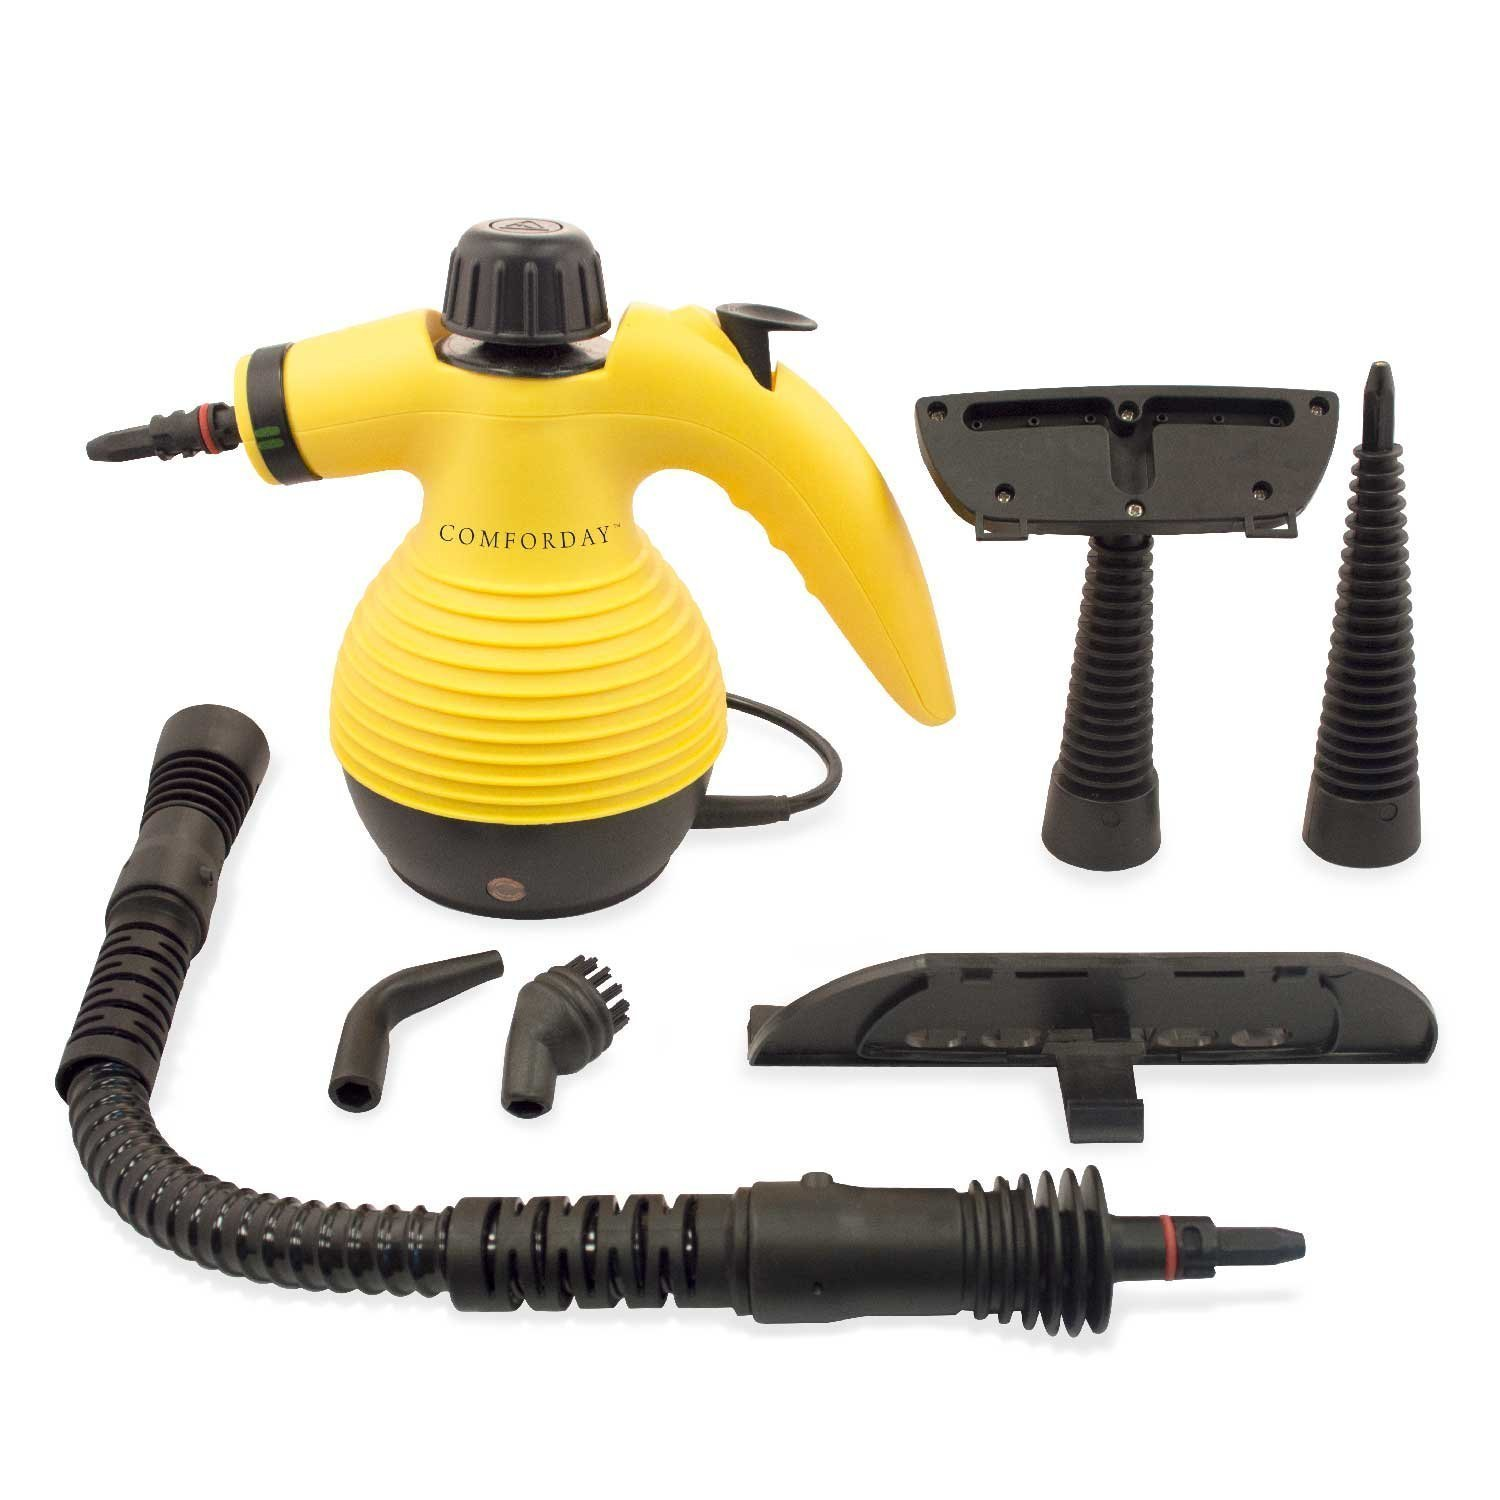 Power Steamers For Cleaning ~ Portable handheld steam cleaner steamer